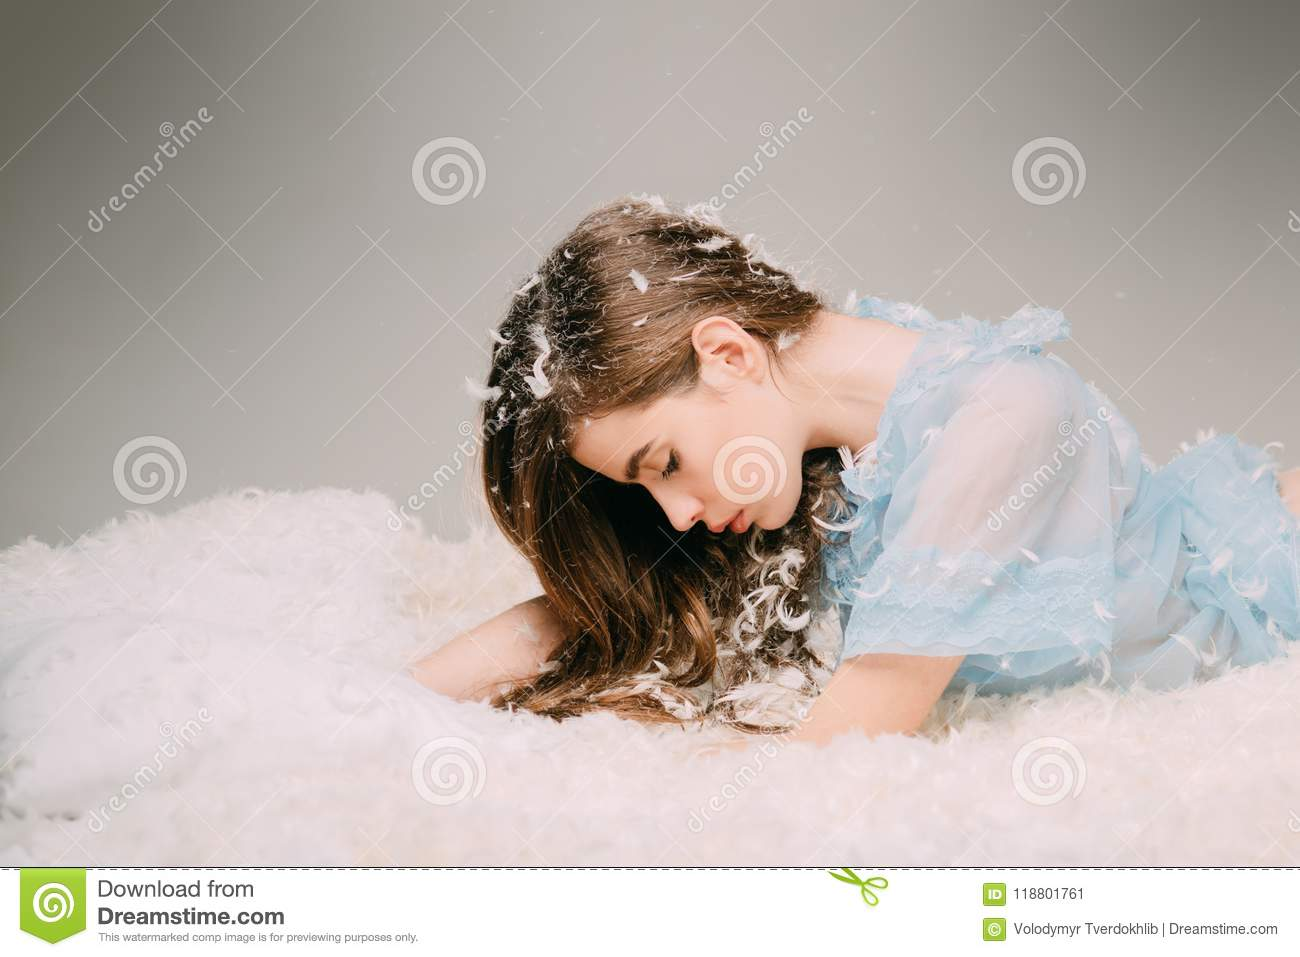 Tenderness and fragility of youth concept. Side view teenage girl lying on drowsy bed on gray background. Beautiful